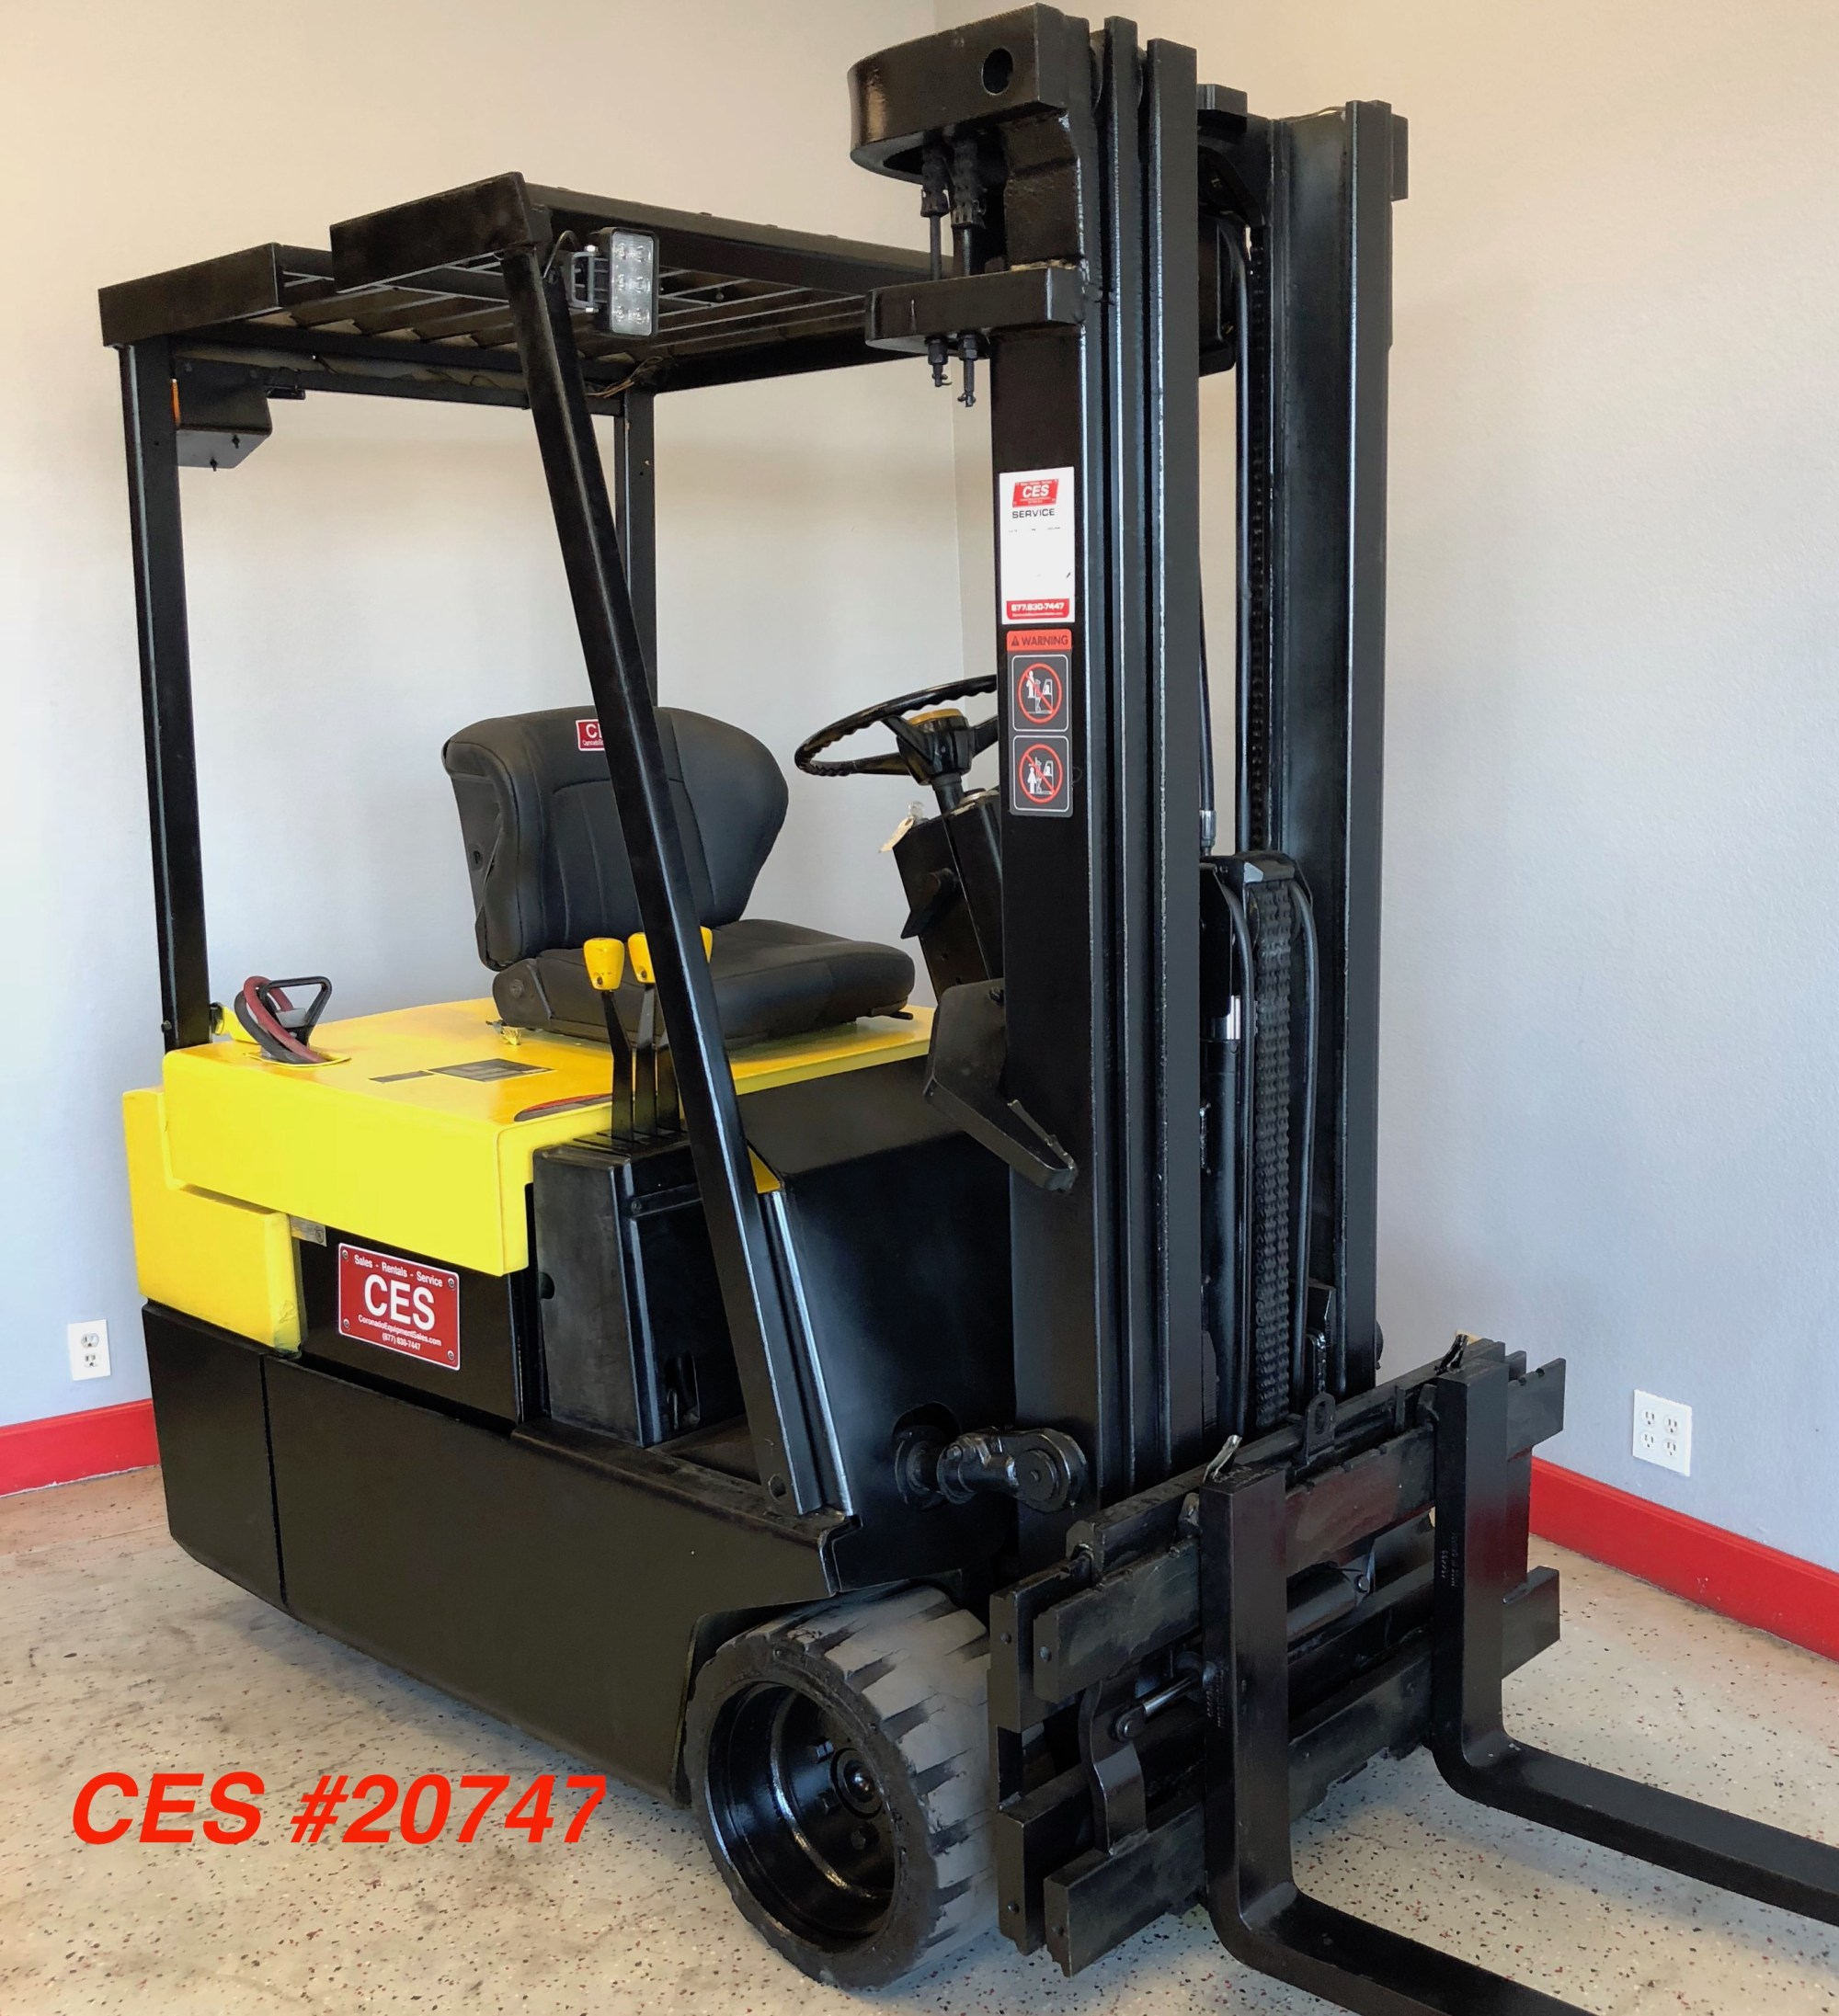 hight resolution of clark forklift service manual by model number find clark operator safety tips